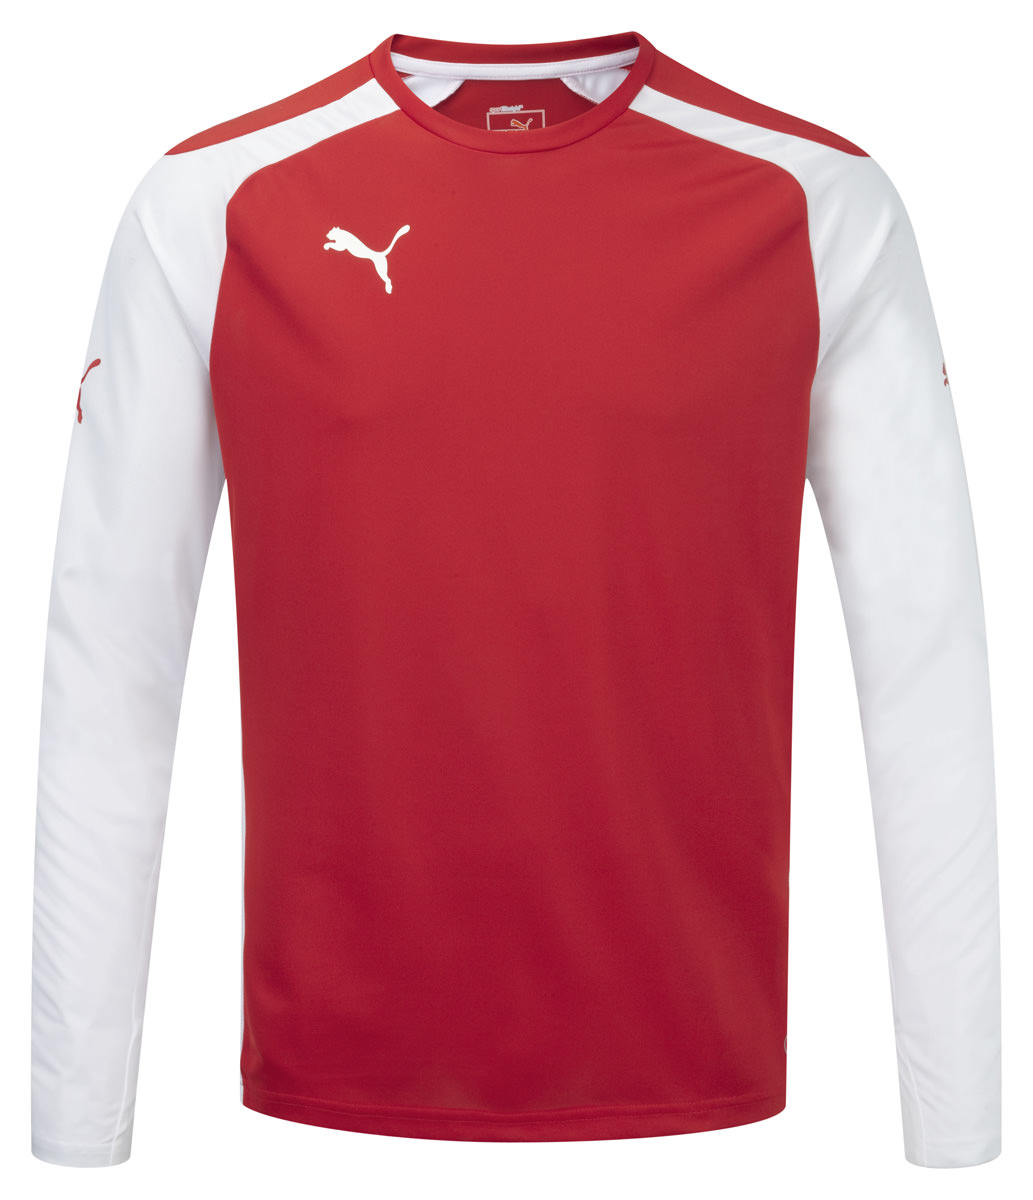 Puma Speed L/S Shirt - Red-White